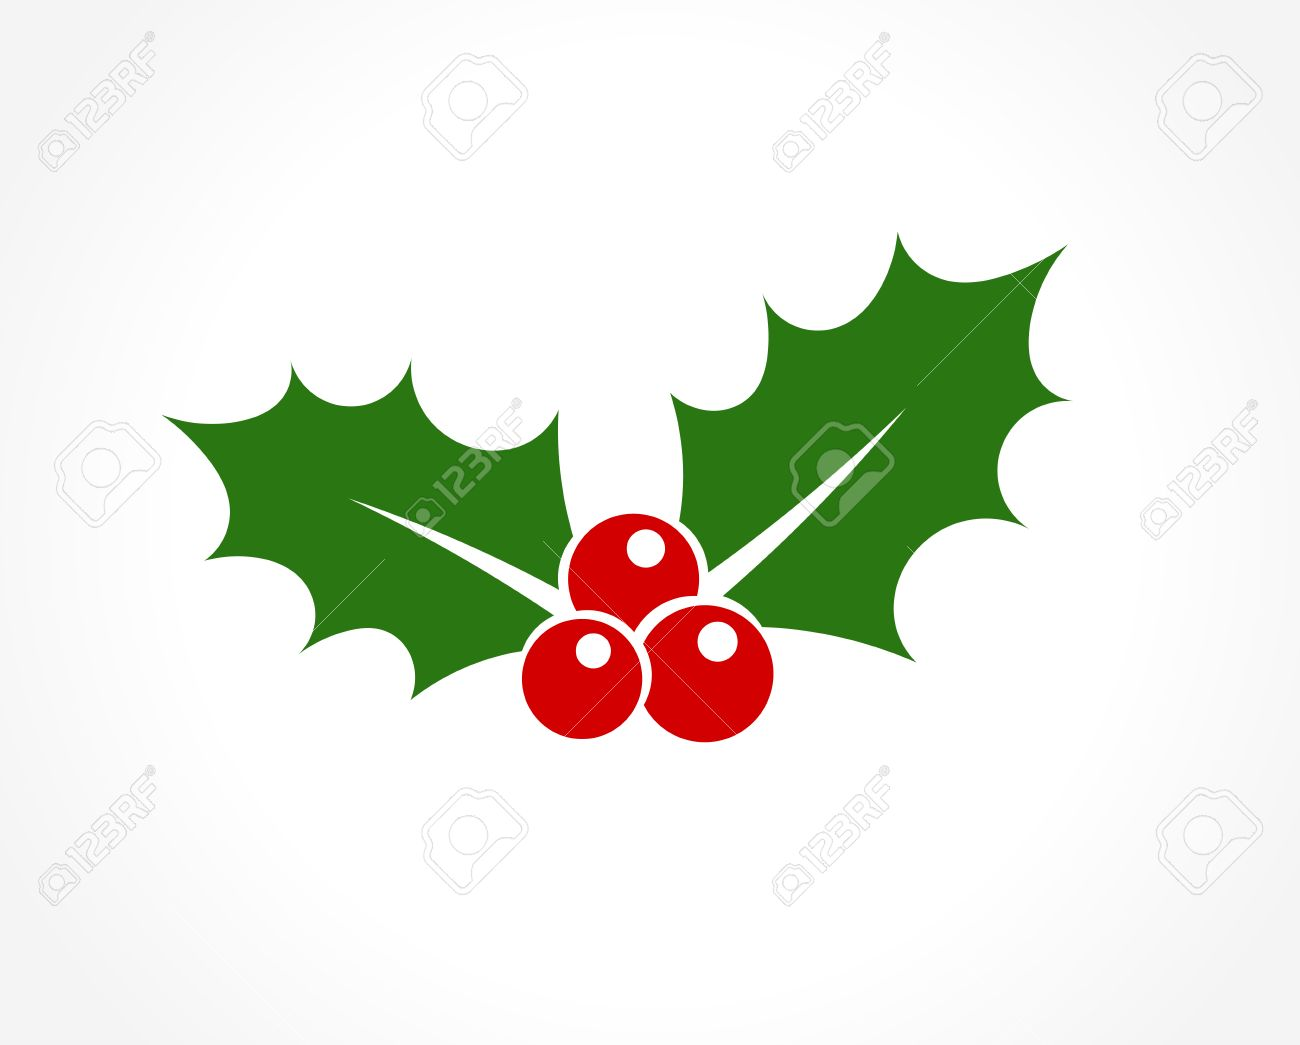 Christmas Icon.Holly Berry Leaves Christmas Icon Vector Illustration